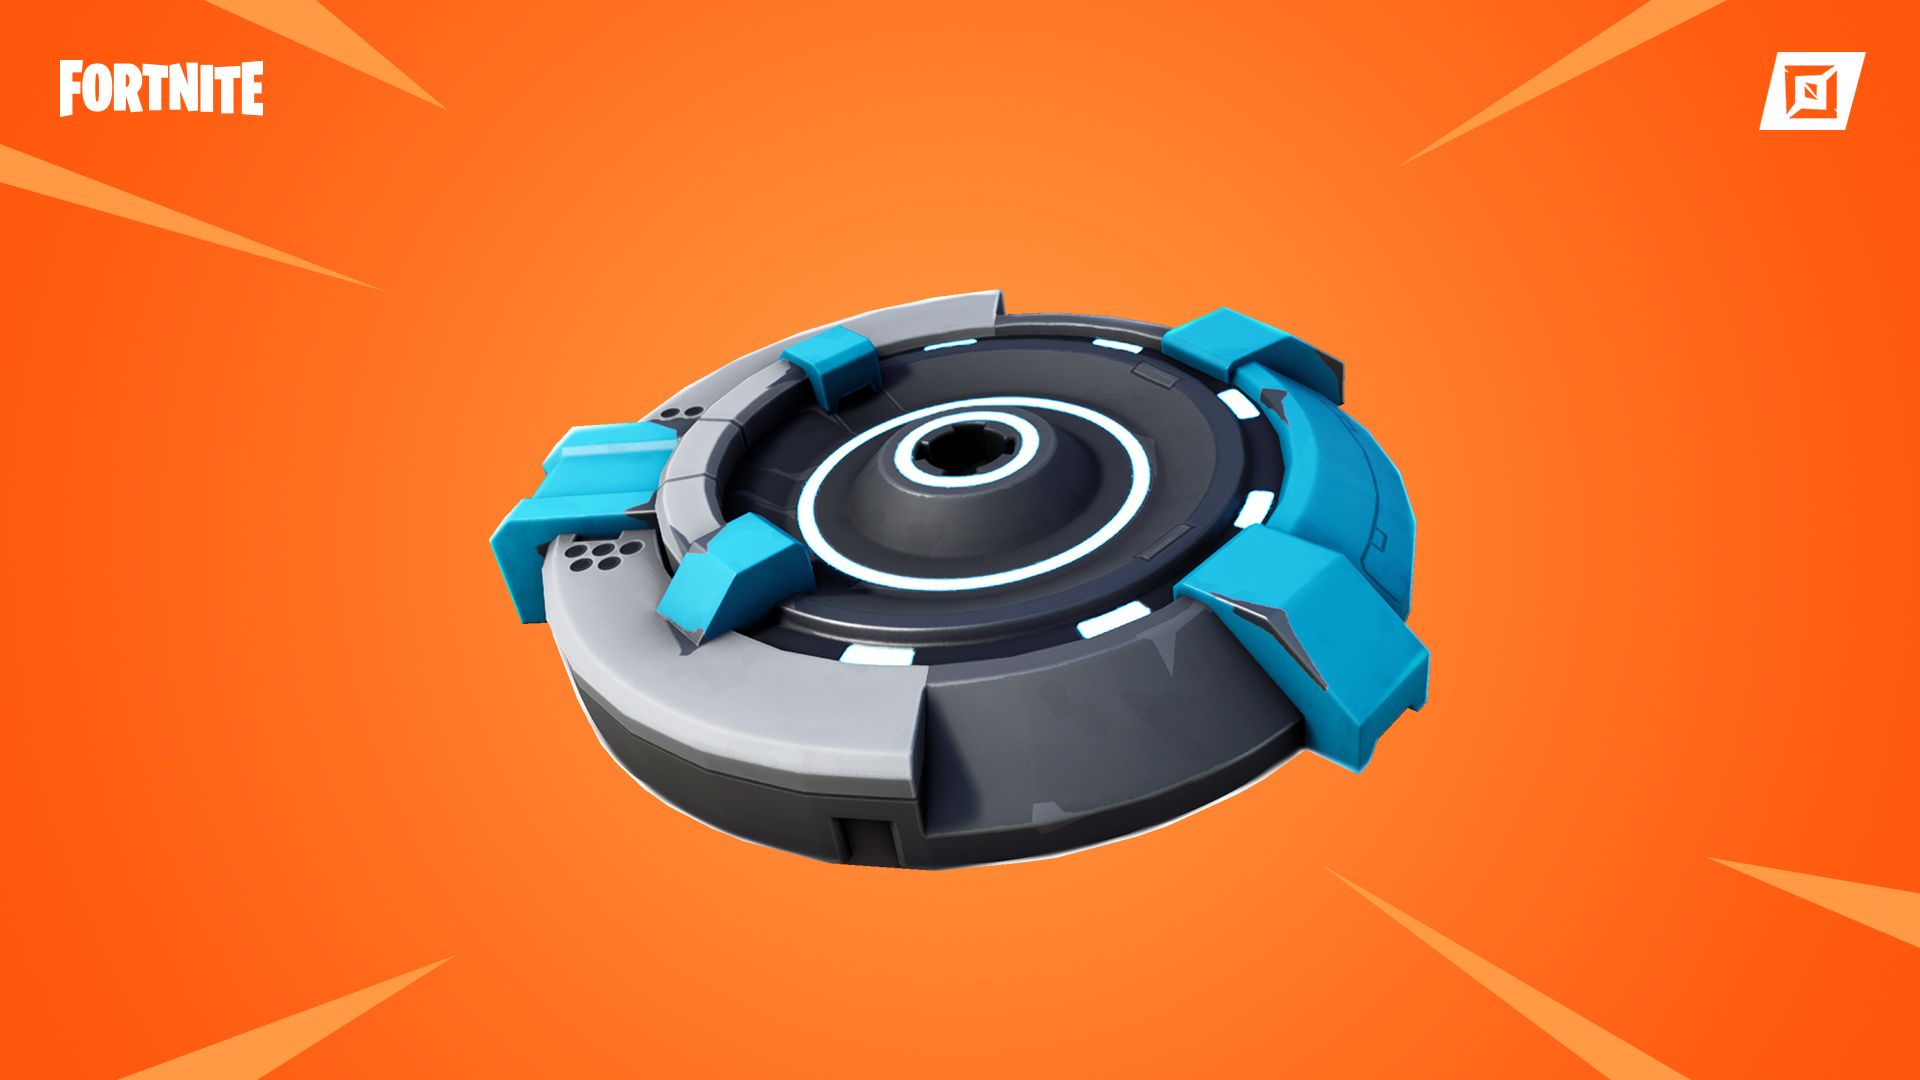 fortnite capture area 830 patch notes - fortnite update 830 time